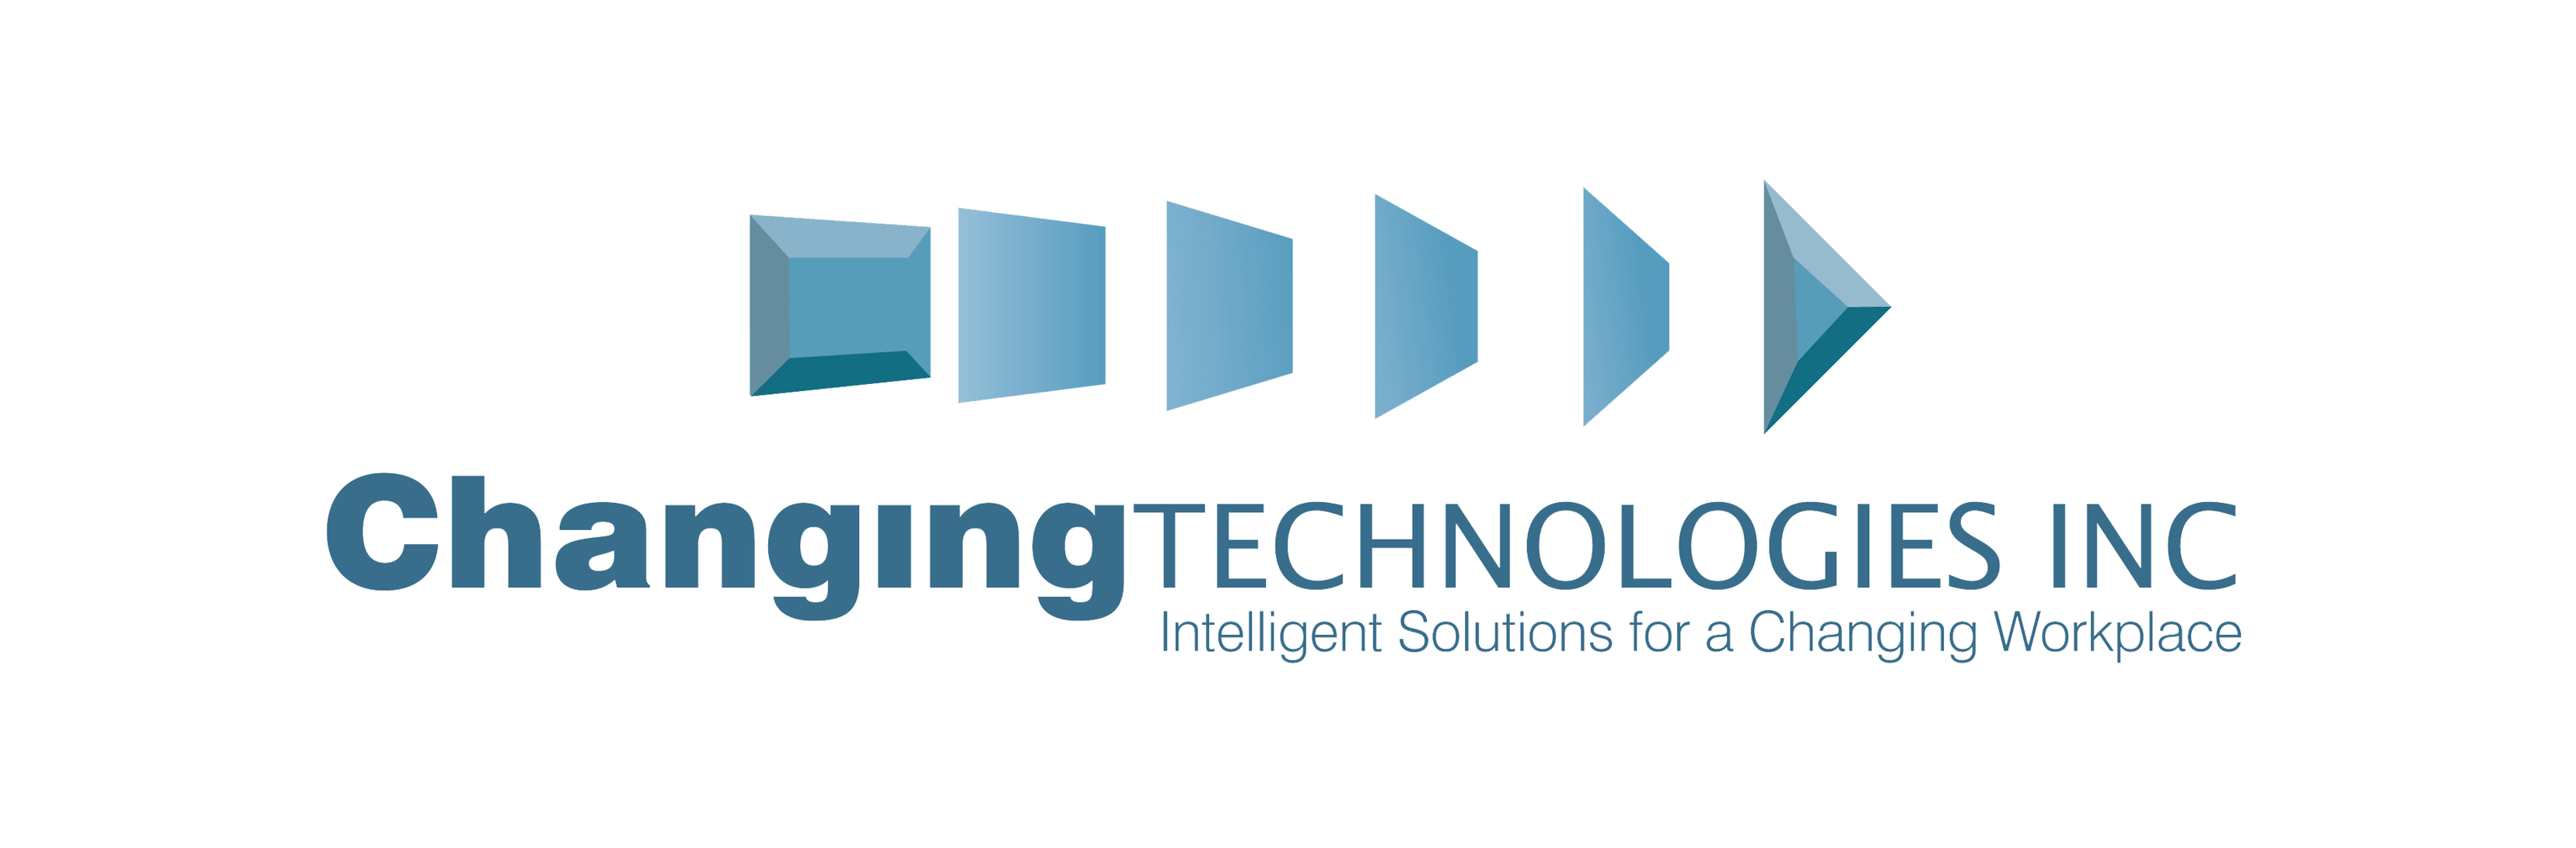 Changing Technologies Inc.